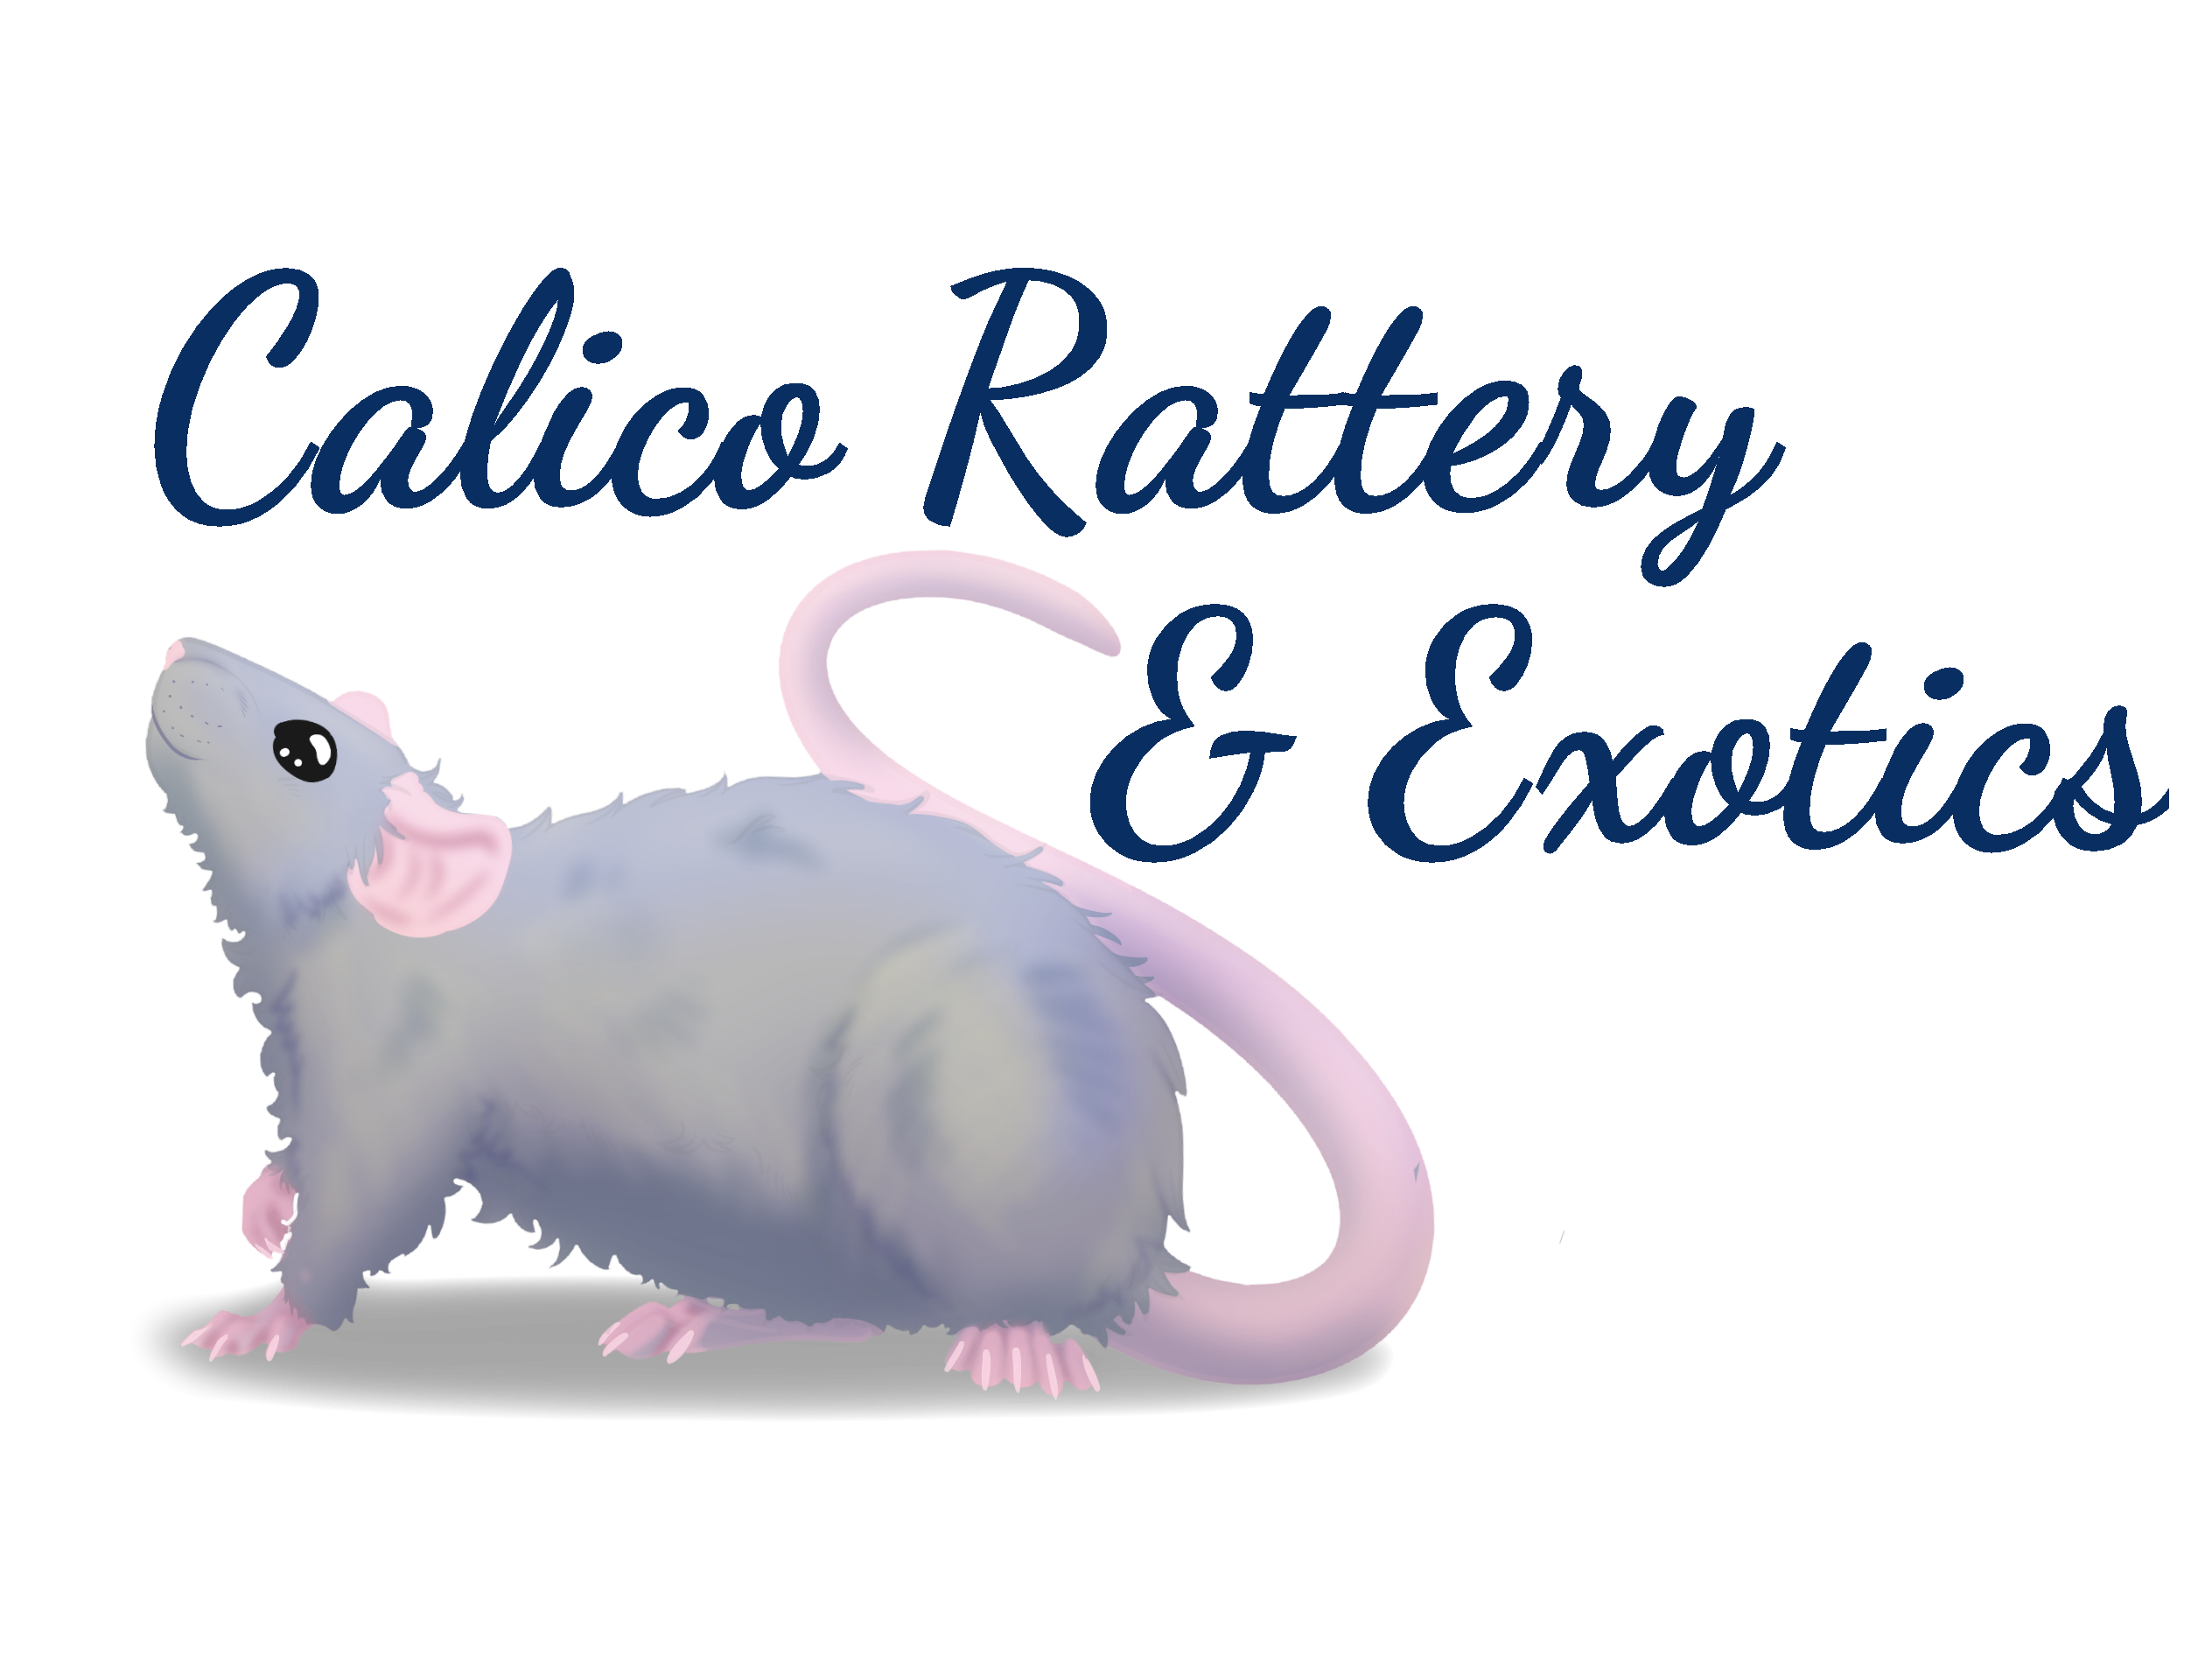 Calico Rattery and Exotics